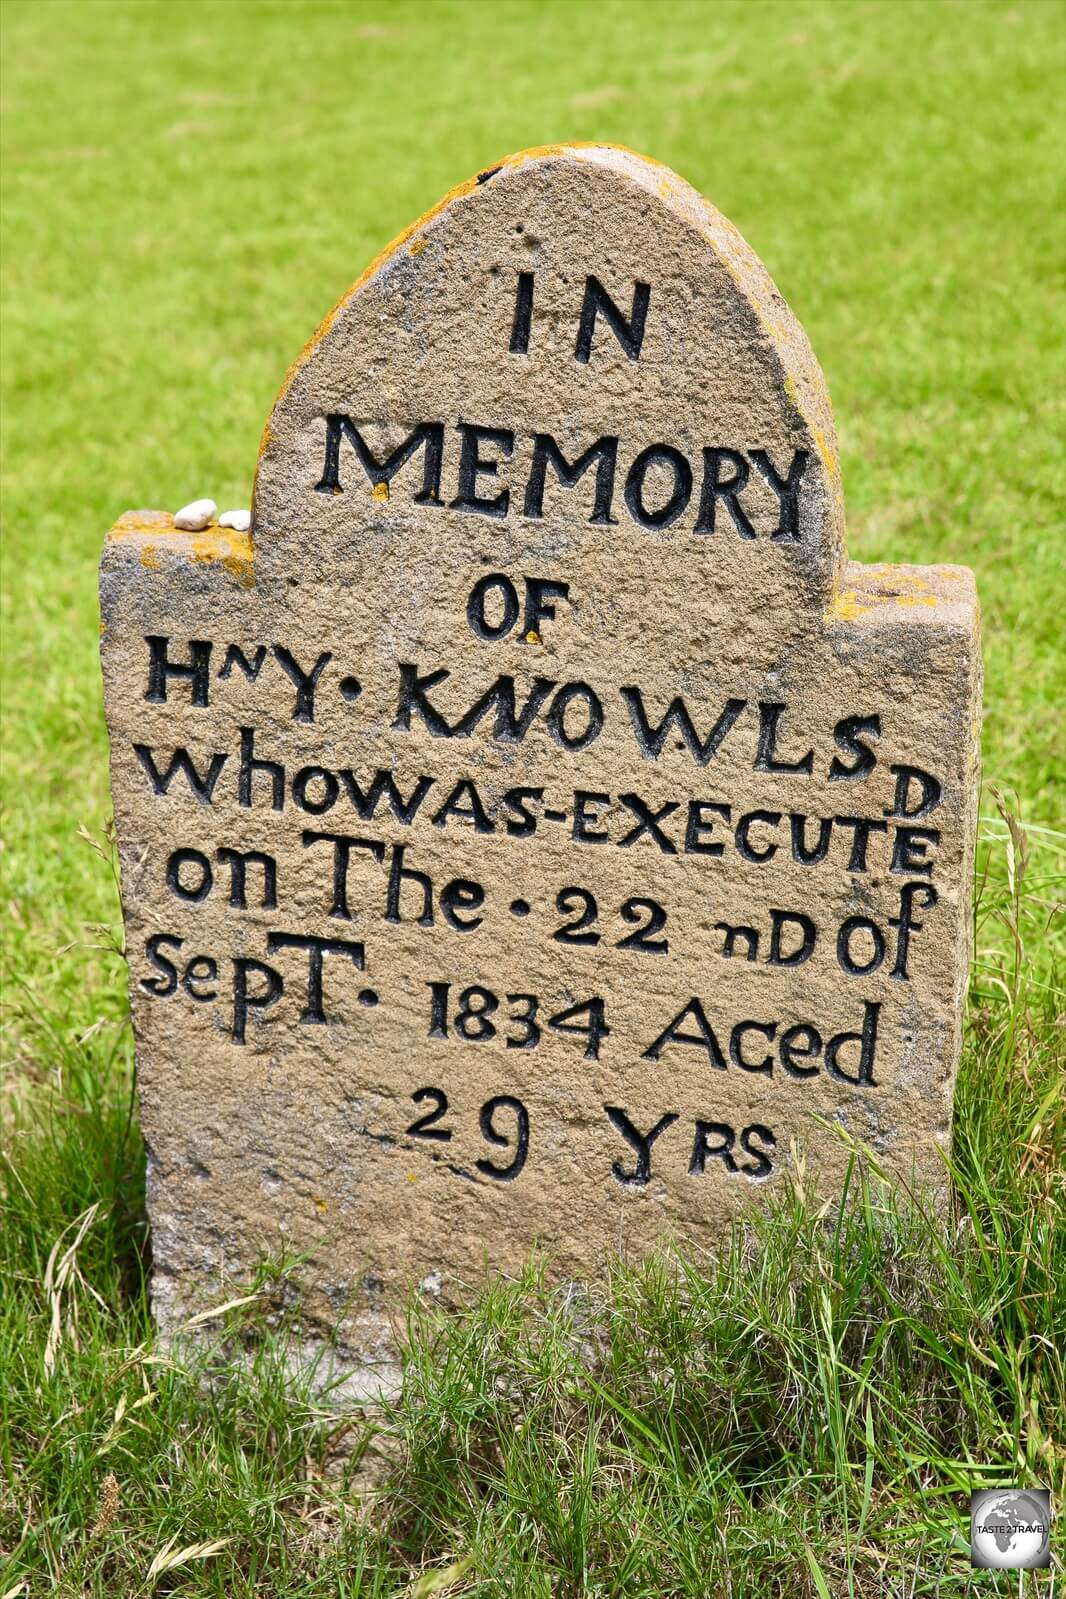 A gravestone of an executed convict at the Kingston cemetery.